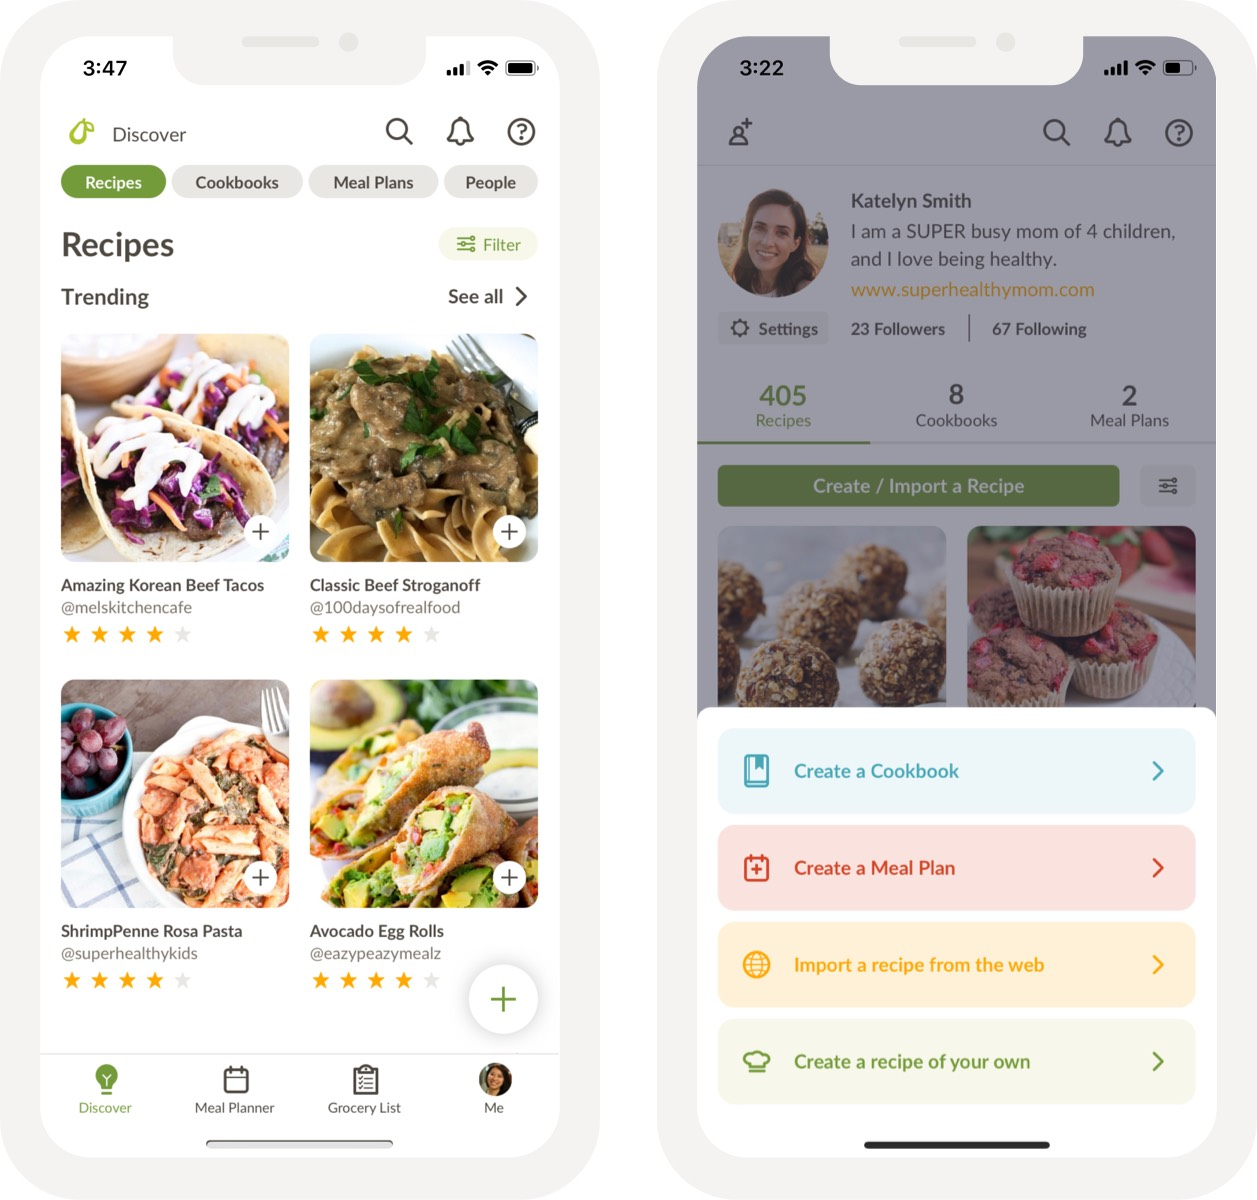 Features of the meal planning app Prepear.